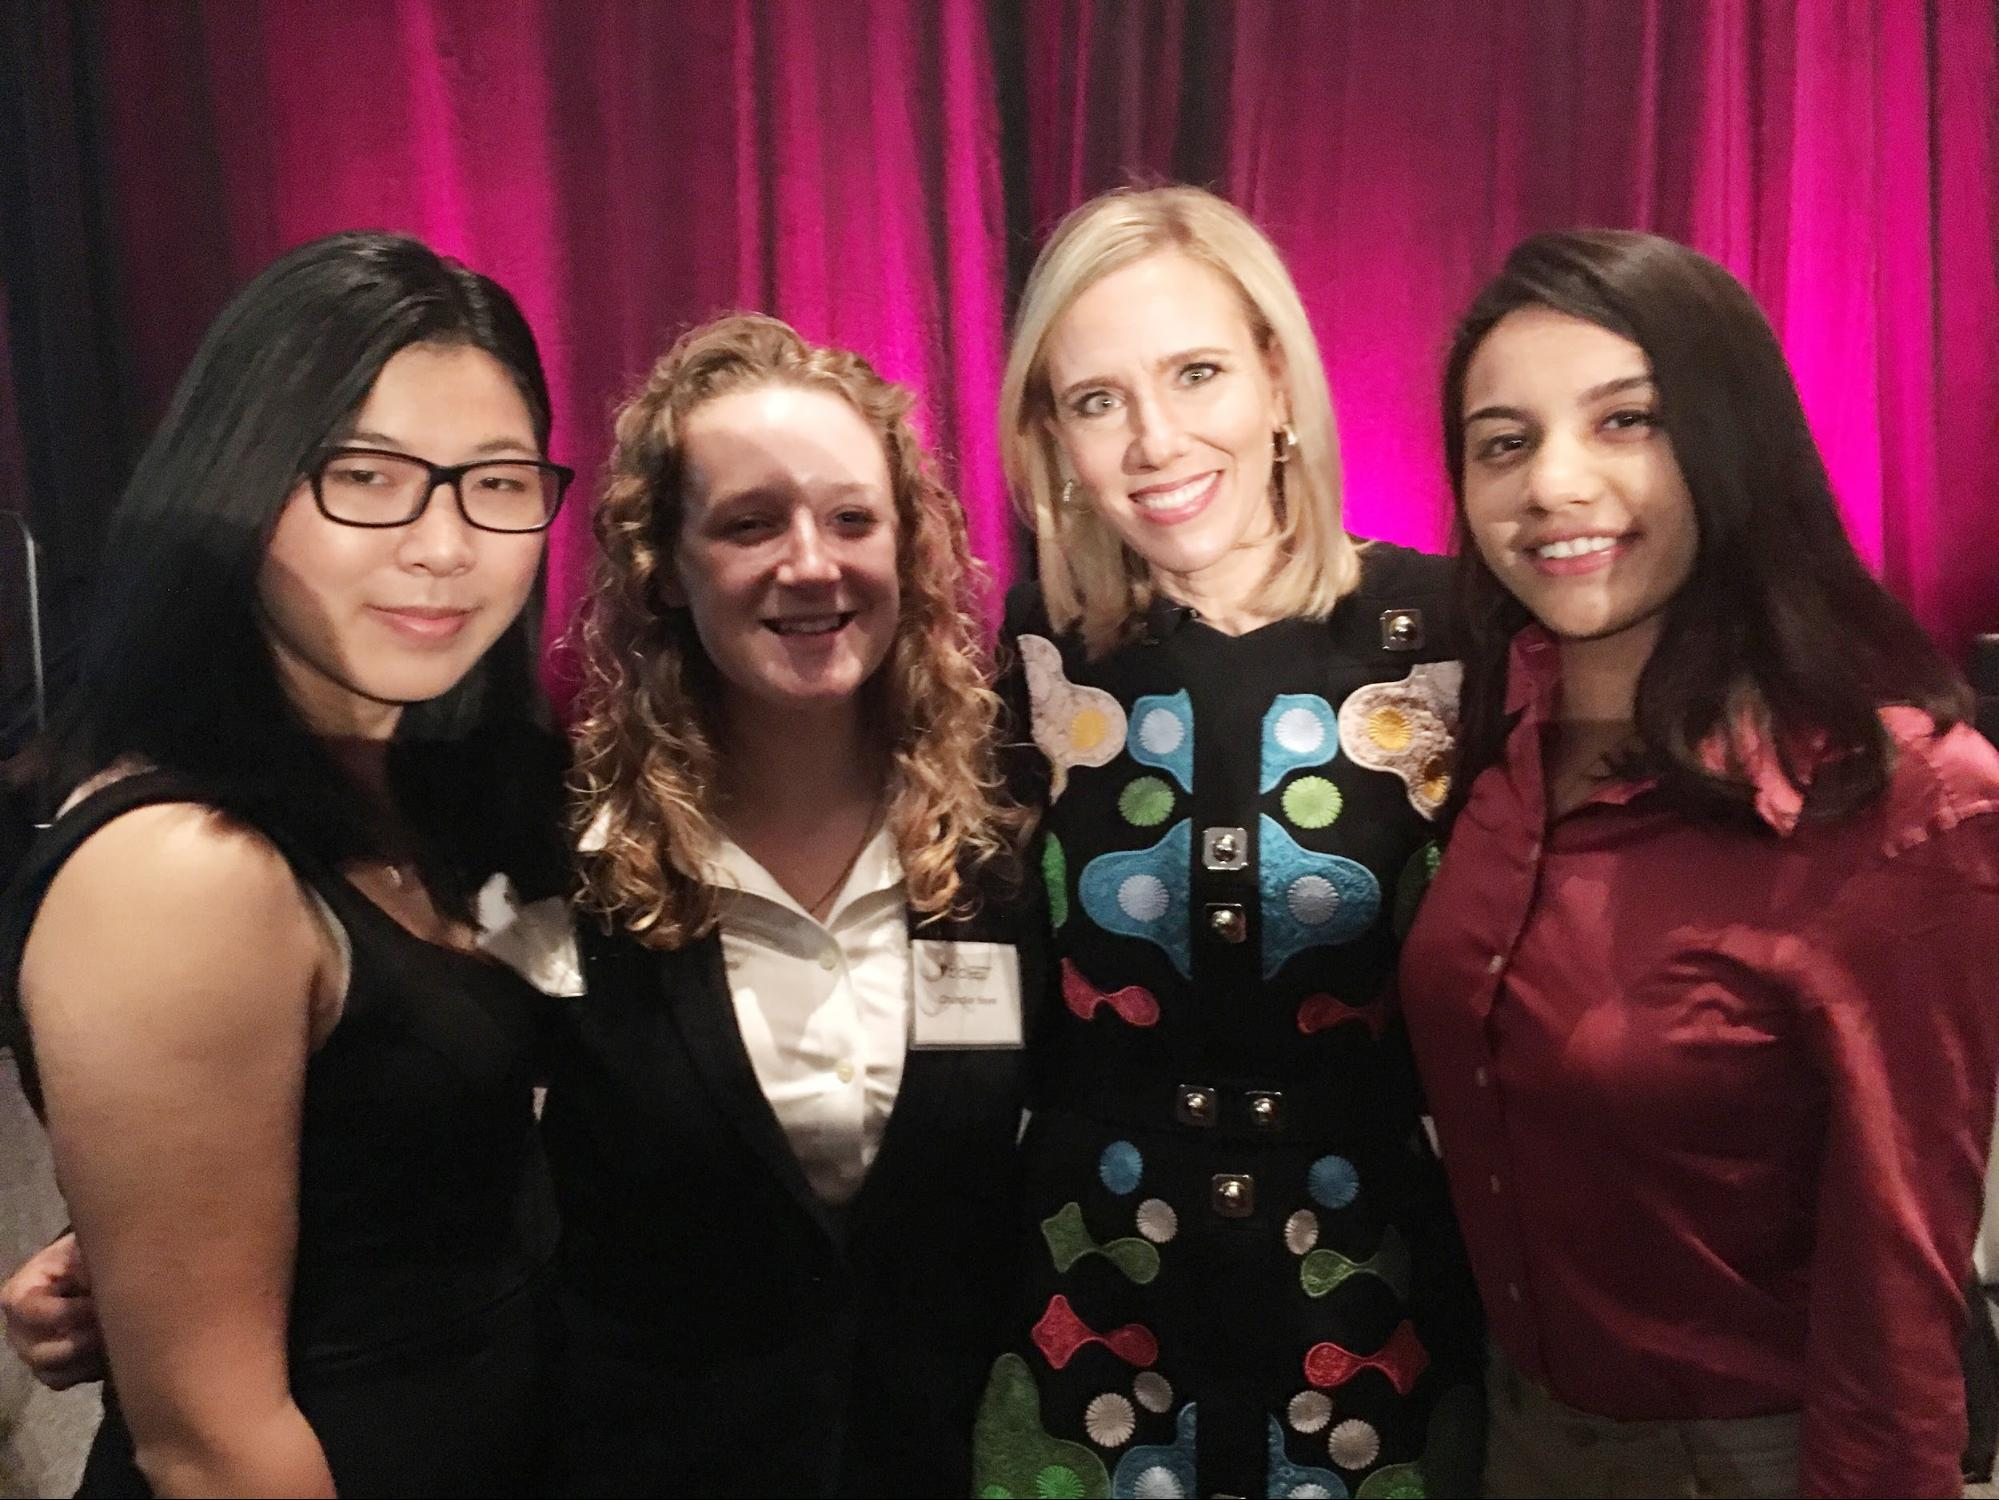 The students with Marne Levine, Chief Operating Officer of Instagram.